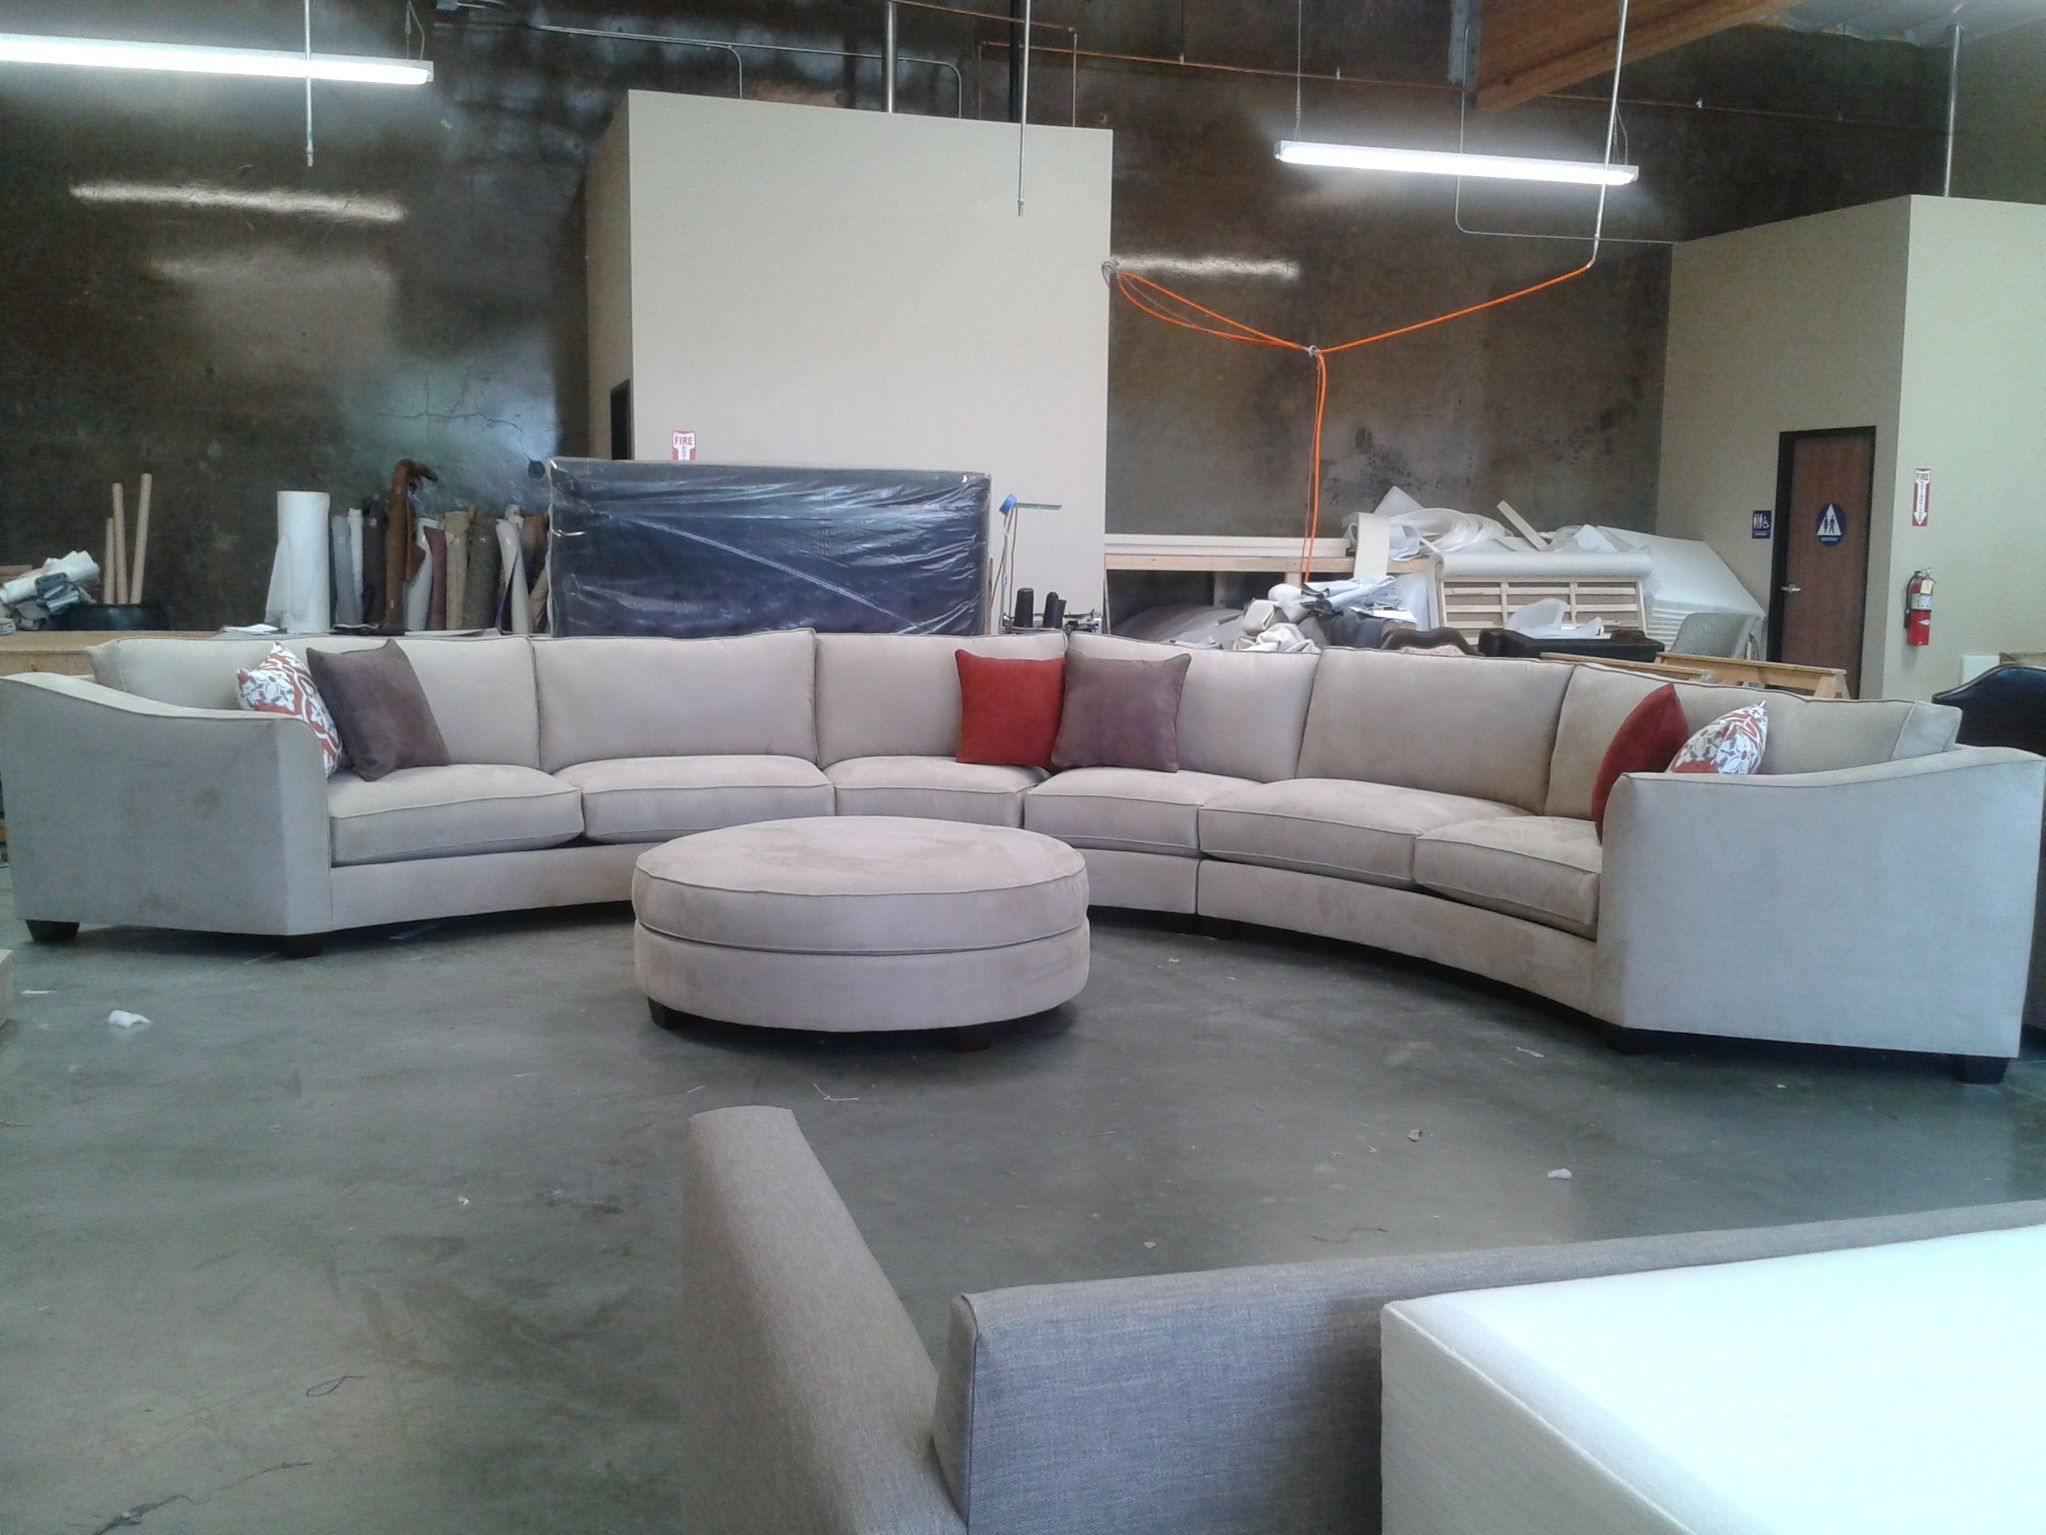 17 Best images about furniture on Pinterest | Sectional sofas, Furniture  and Fabrics